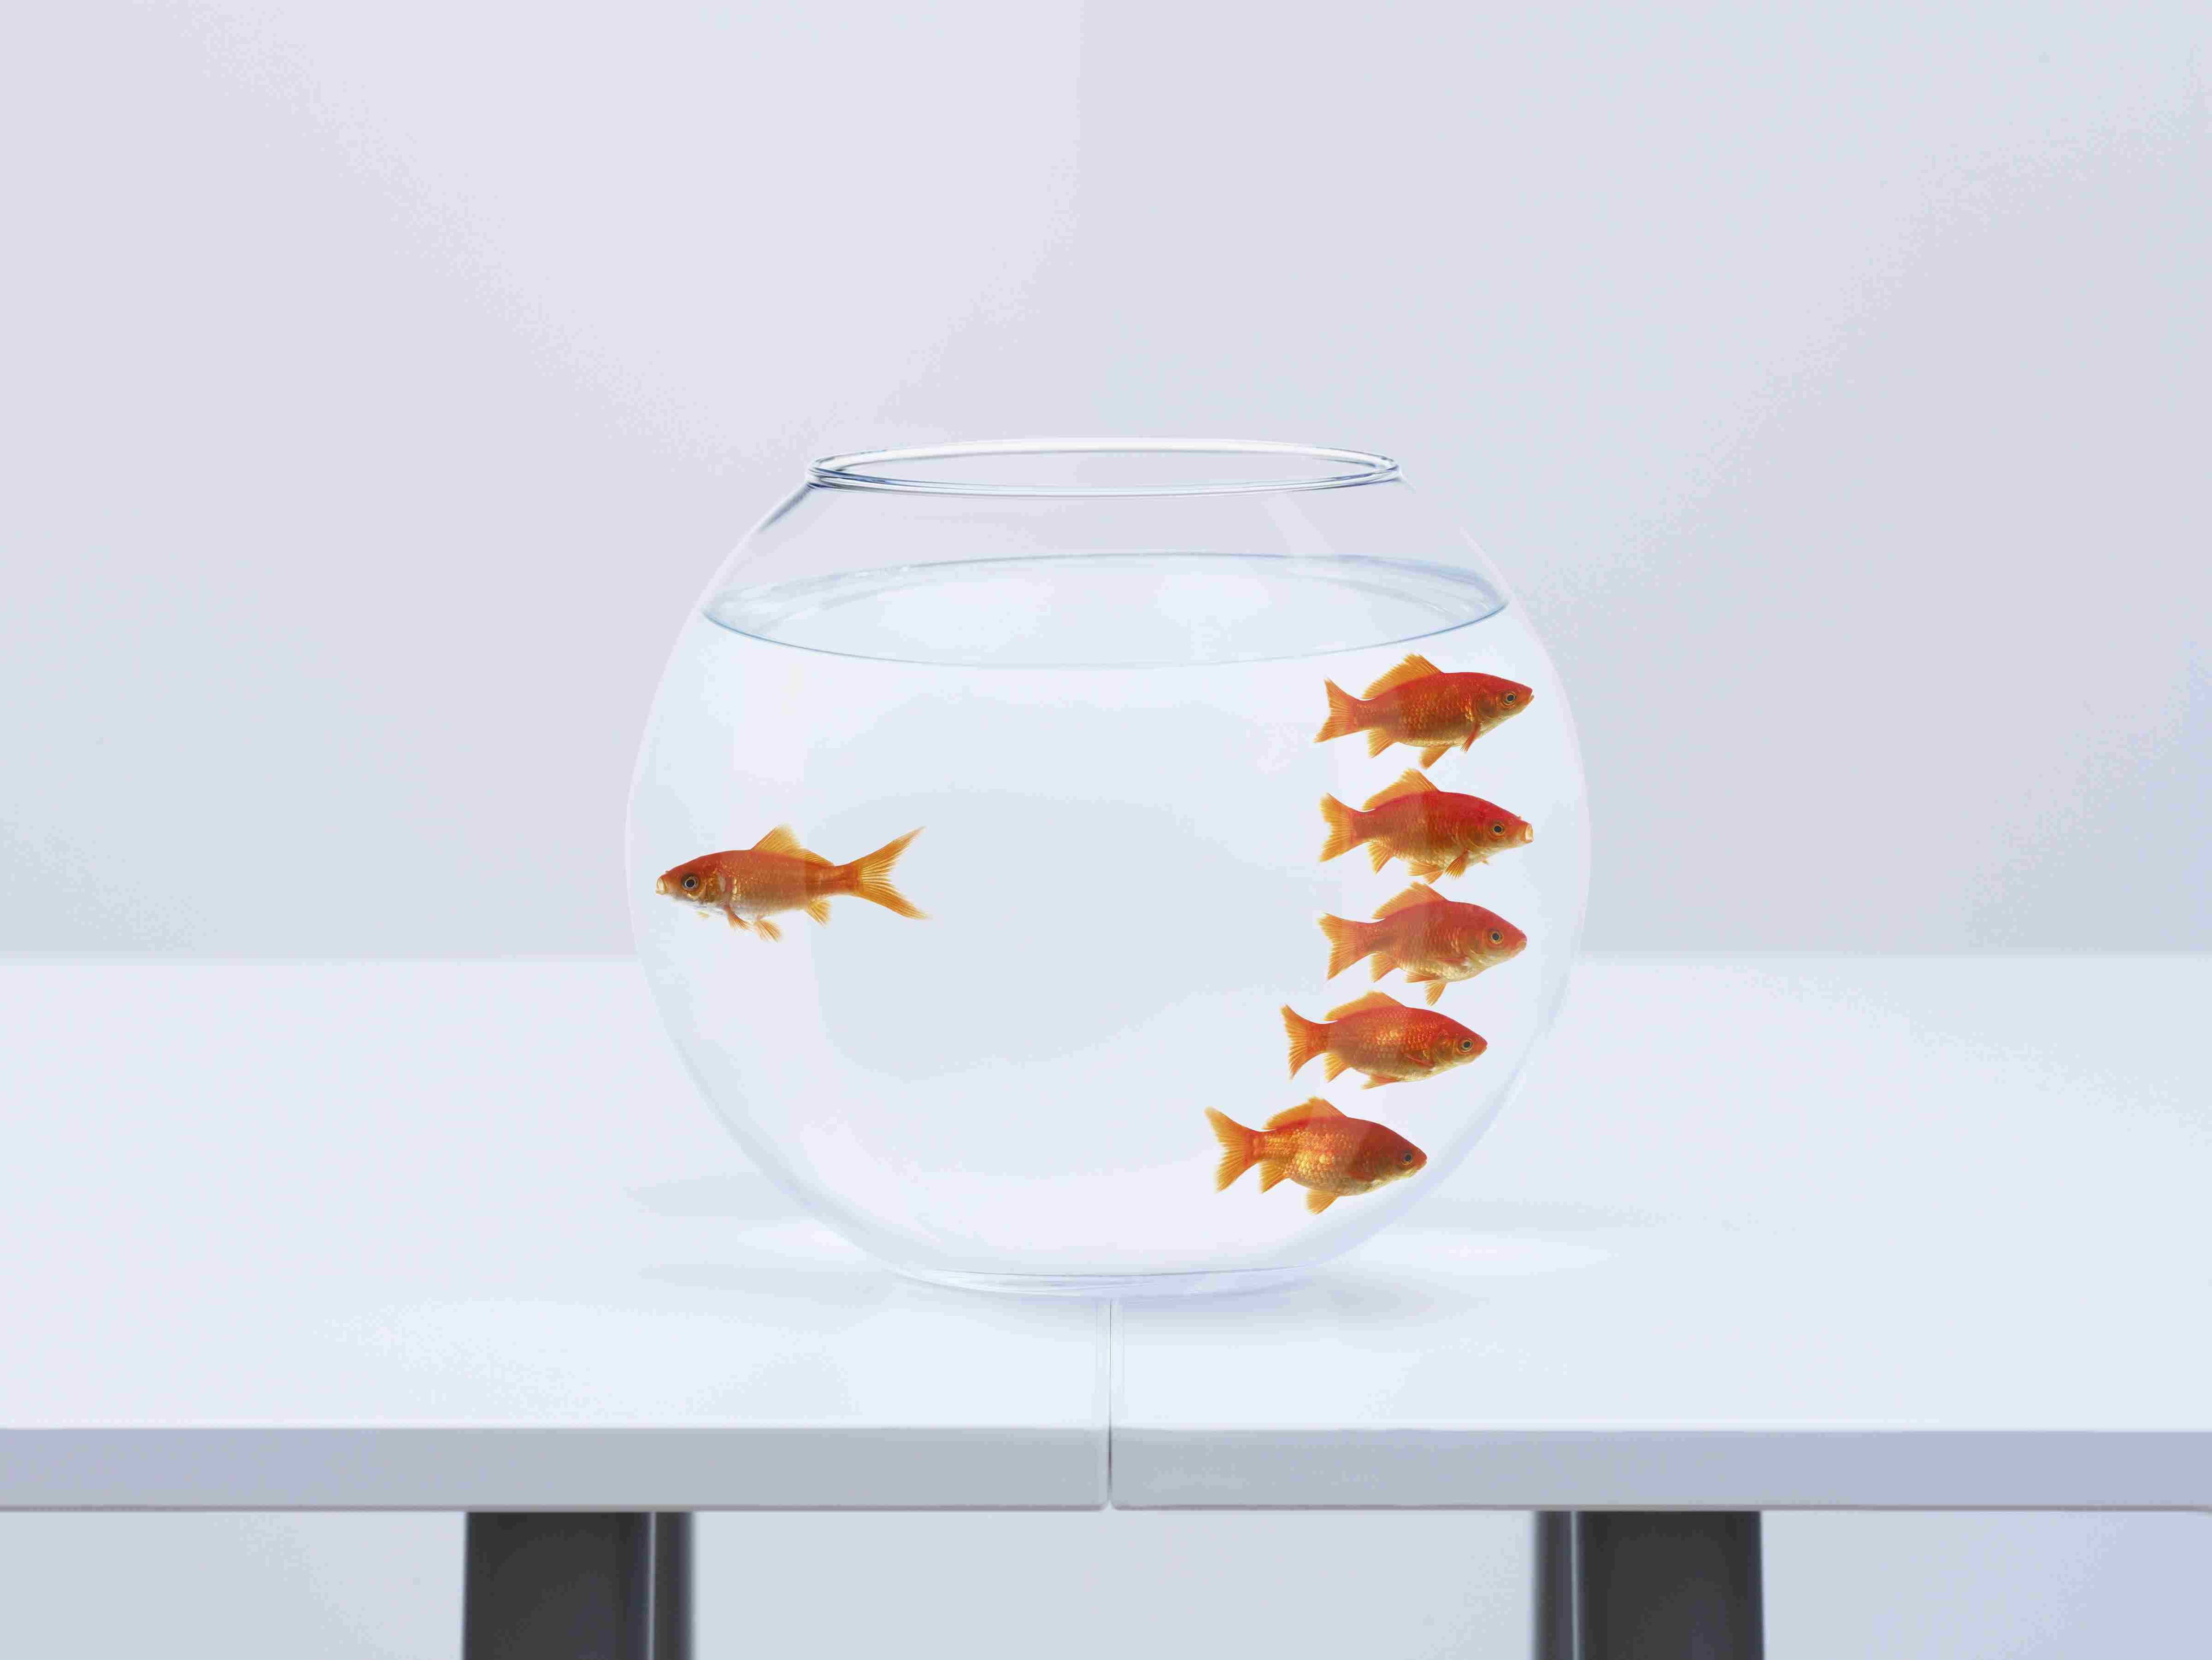 A bowl of goldfish with one fish facing left and five fish facing right.